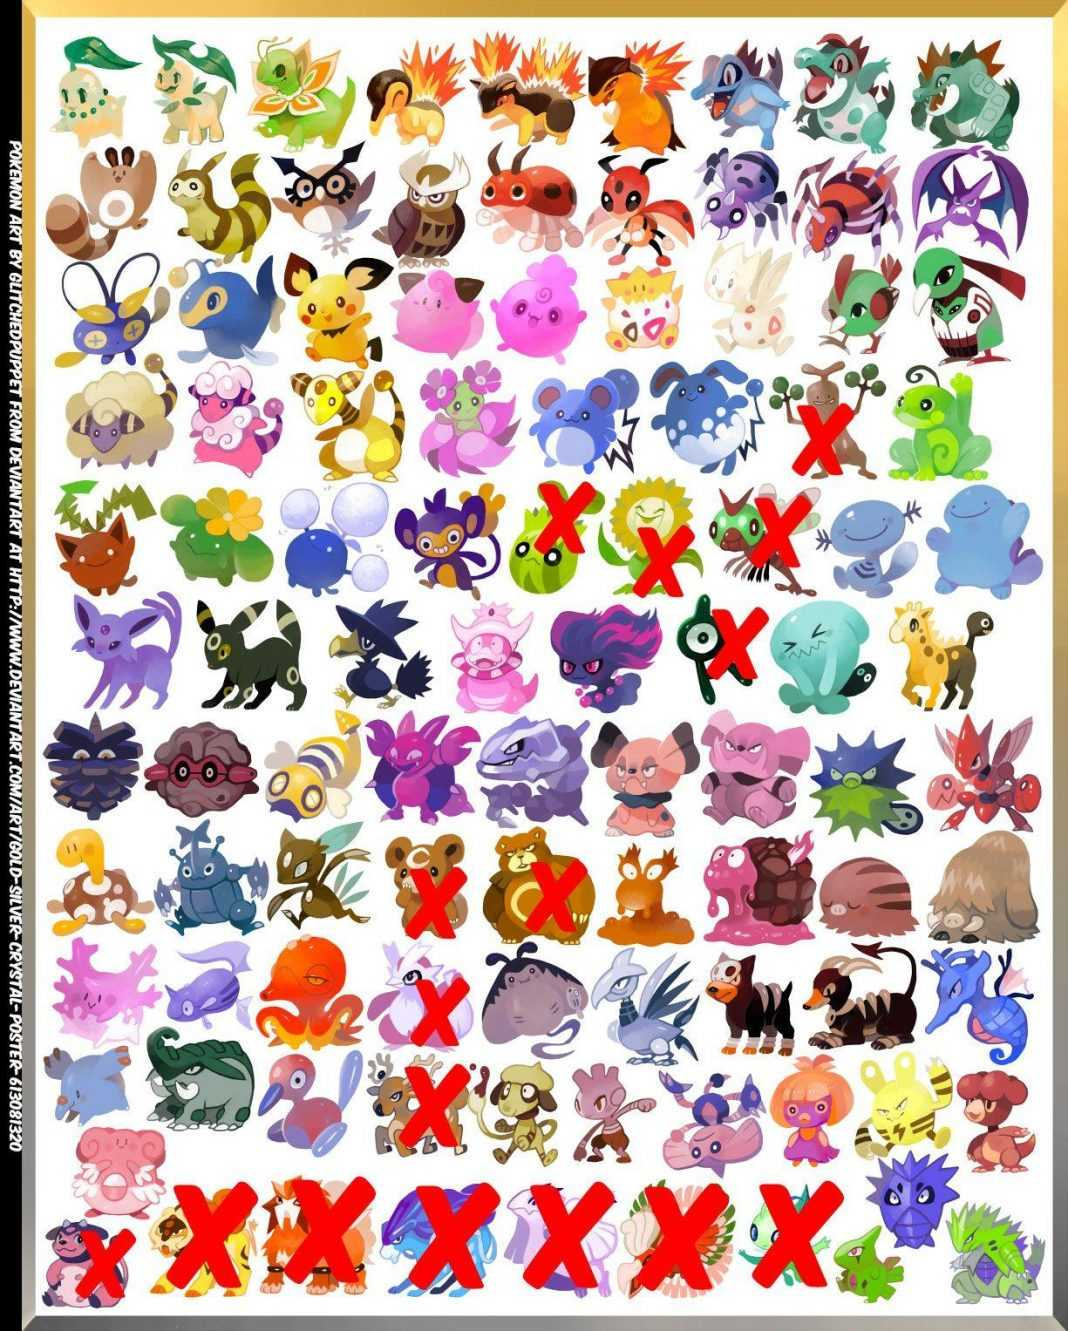 see our gen 2 pokemon go 1st wave list and release date